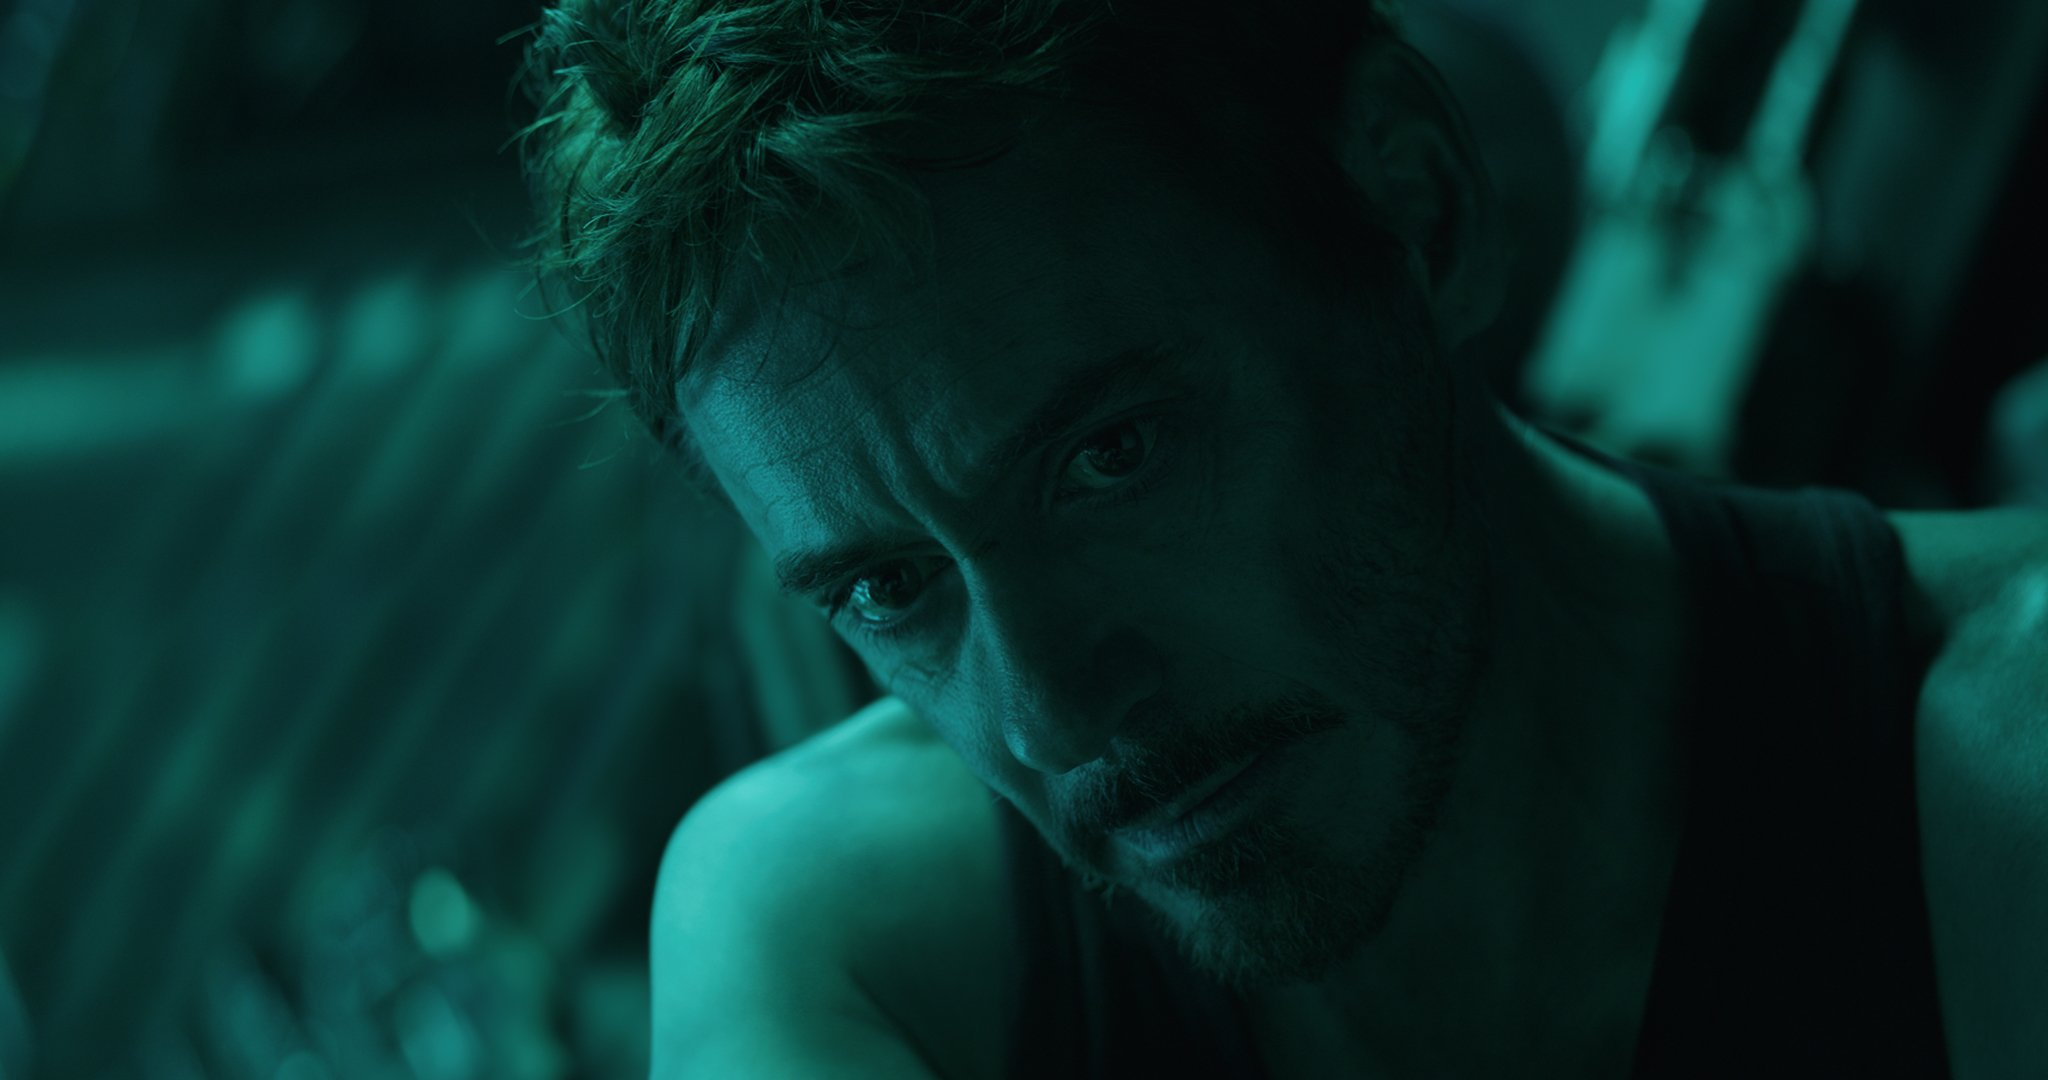 Photo du film Avengers: Endgame avec Tony Stark (Robert Downey Jr.)